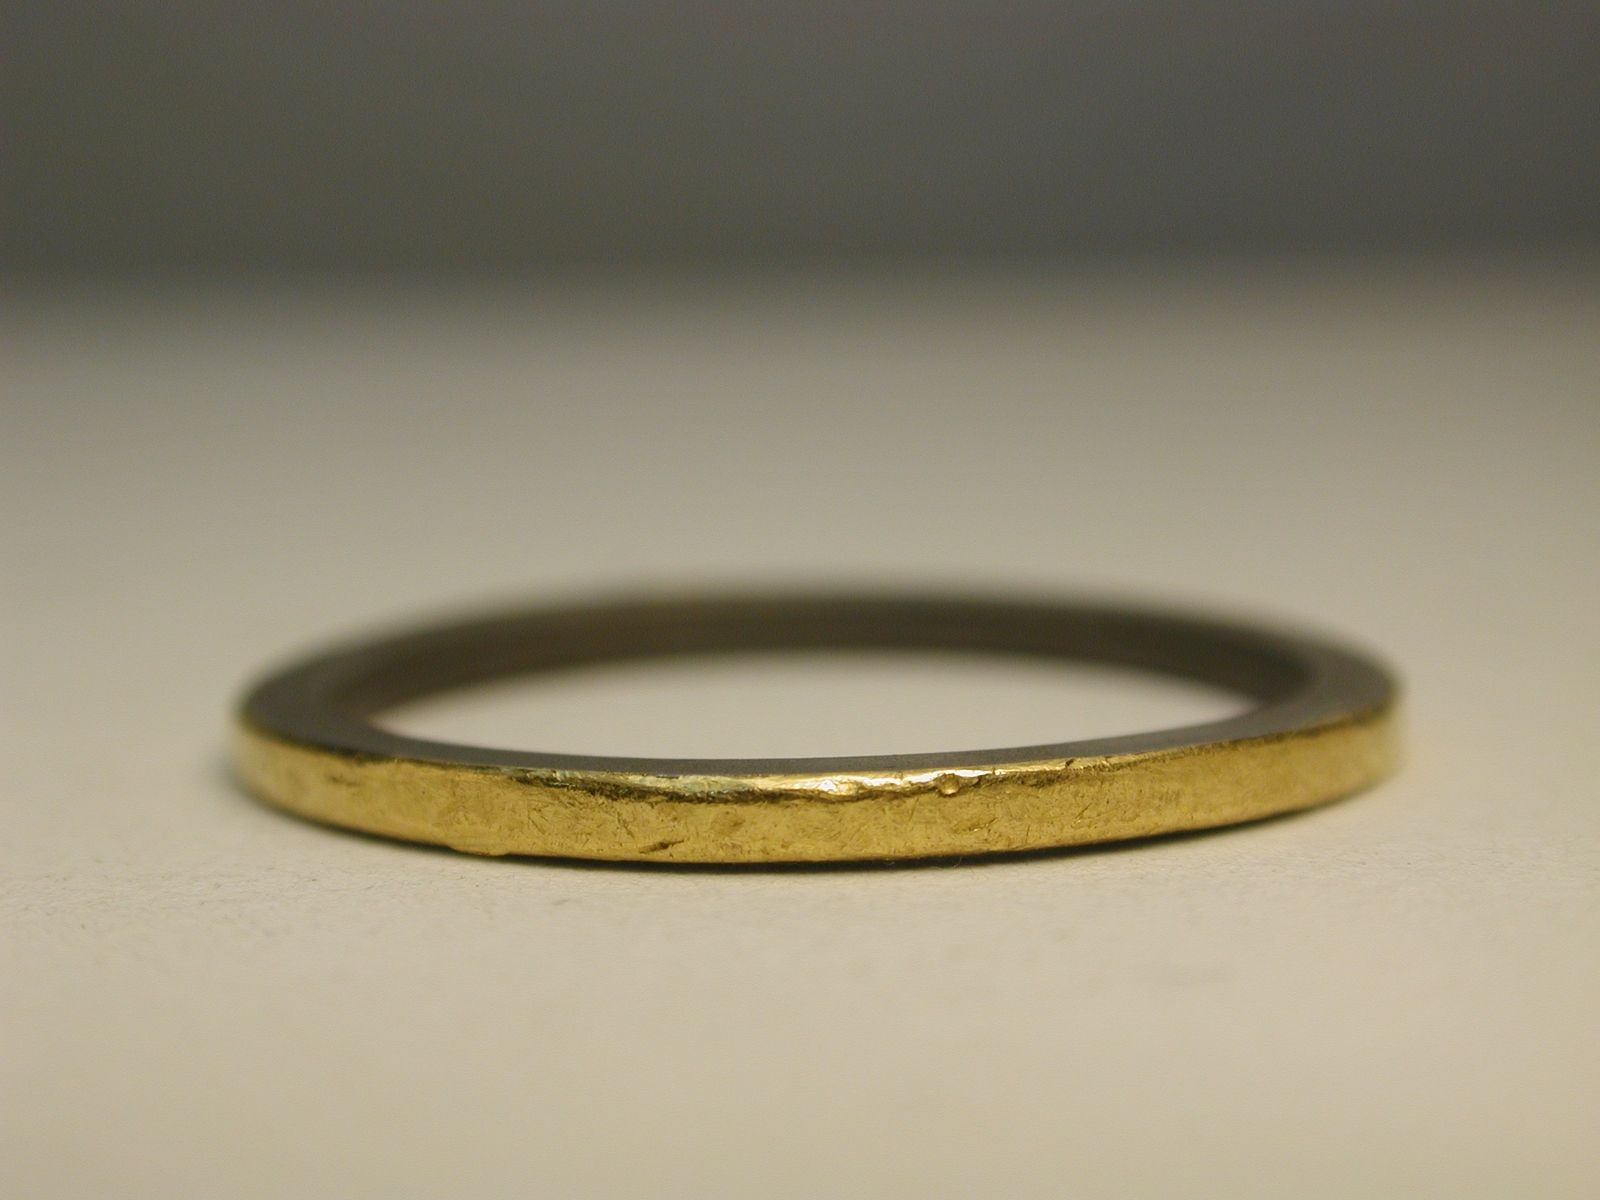 Custom Made Anium Wedding Ring With 24k Gold Inlay